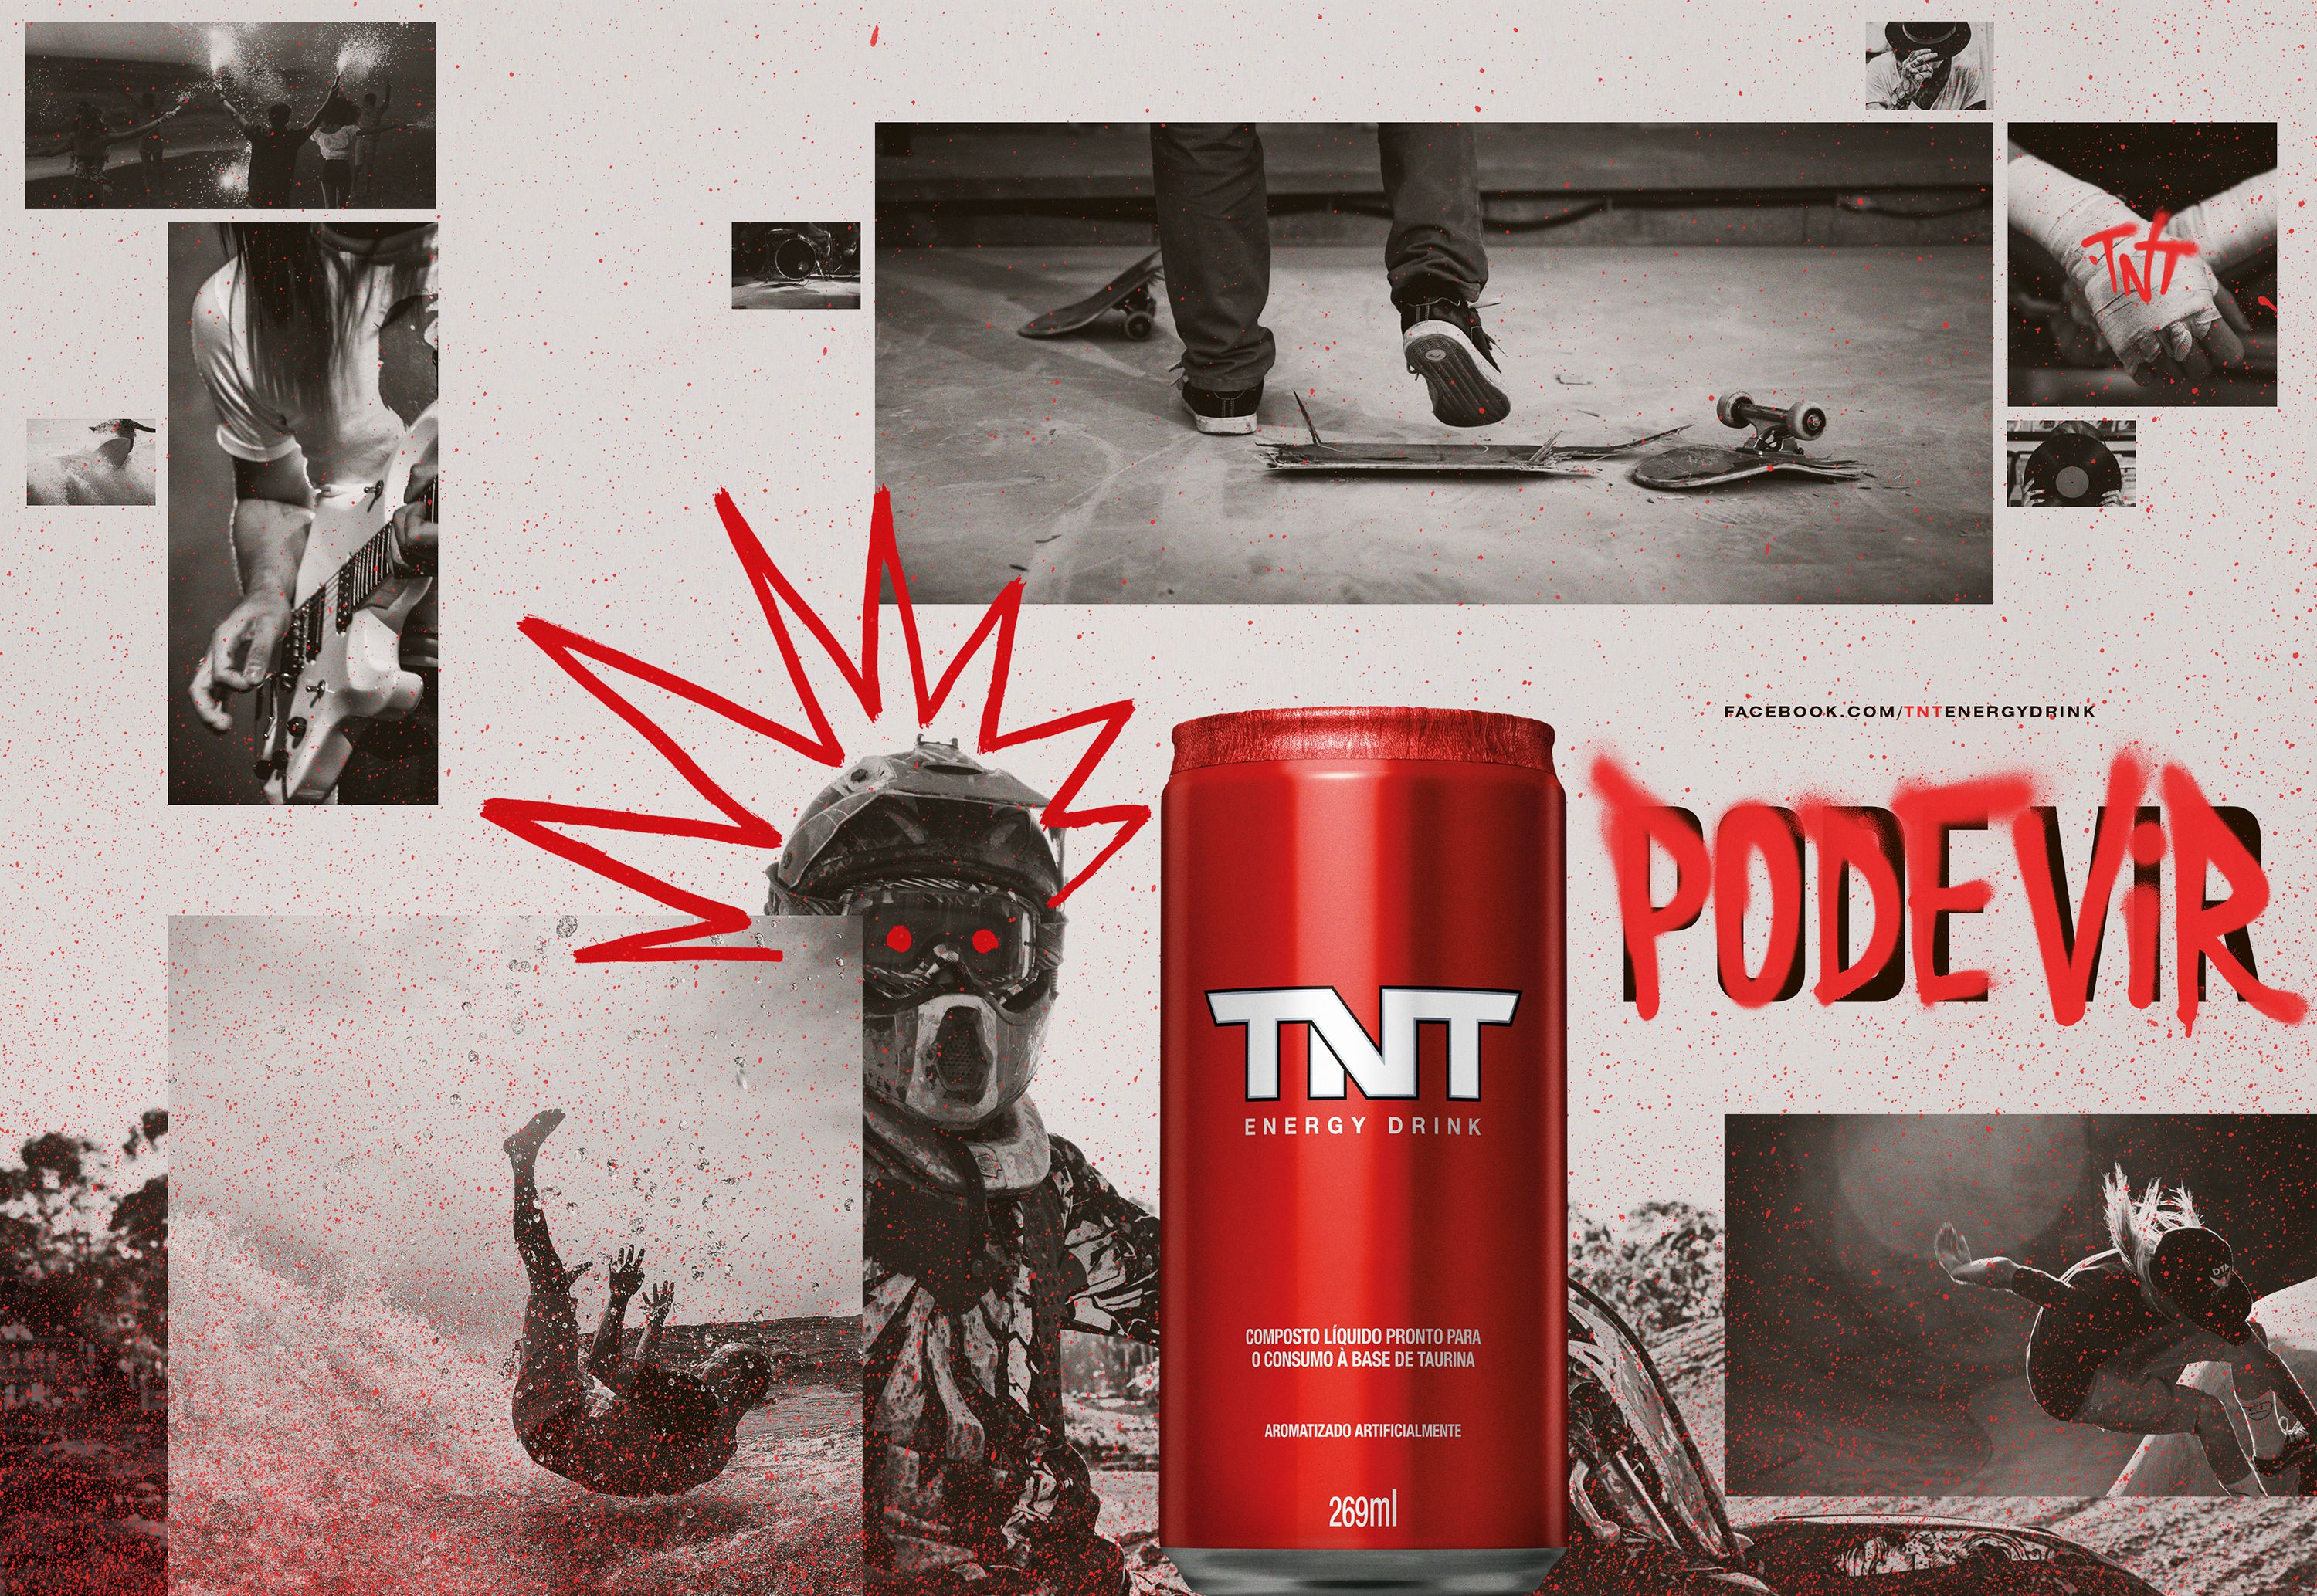 Campaign To Launch The New Tnt Energy Drink Concept Bring It On In 2020 Energy Drinks Energy Drinks